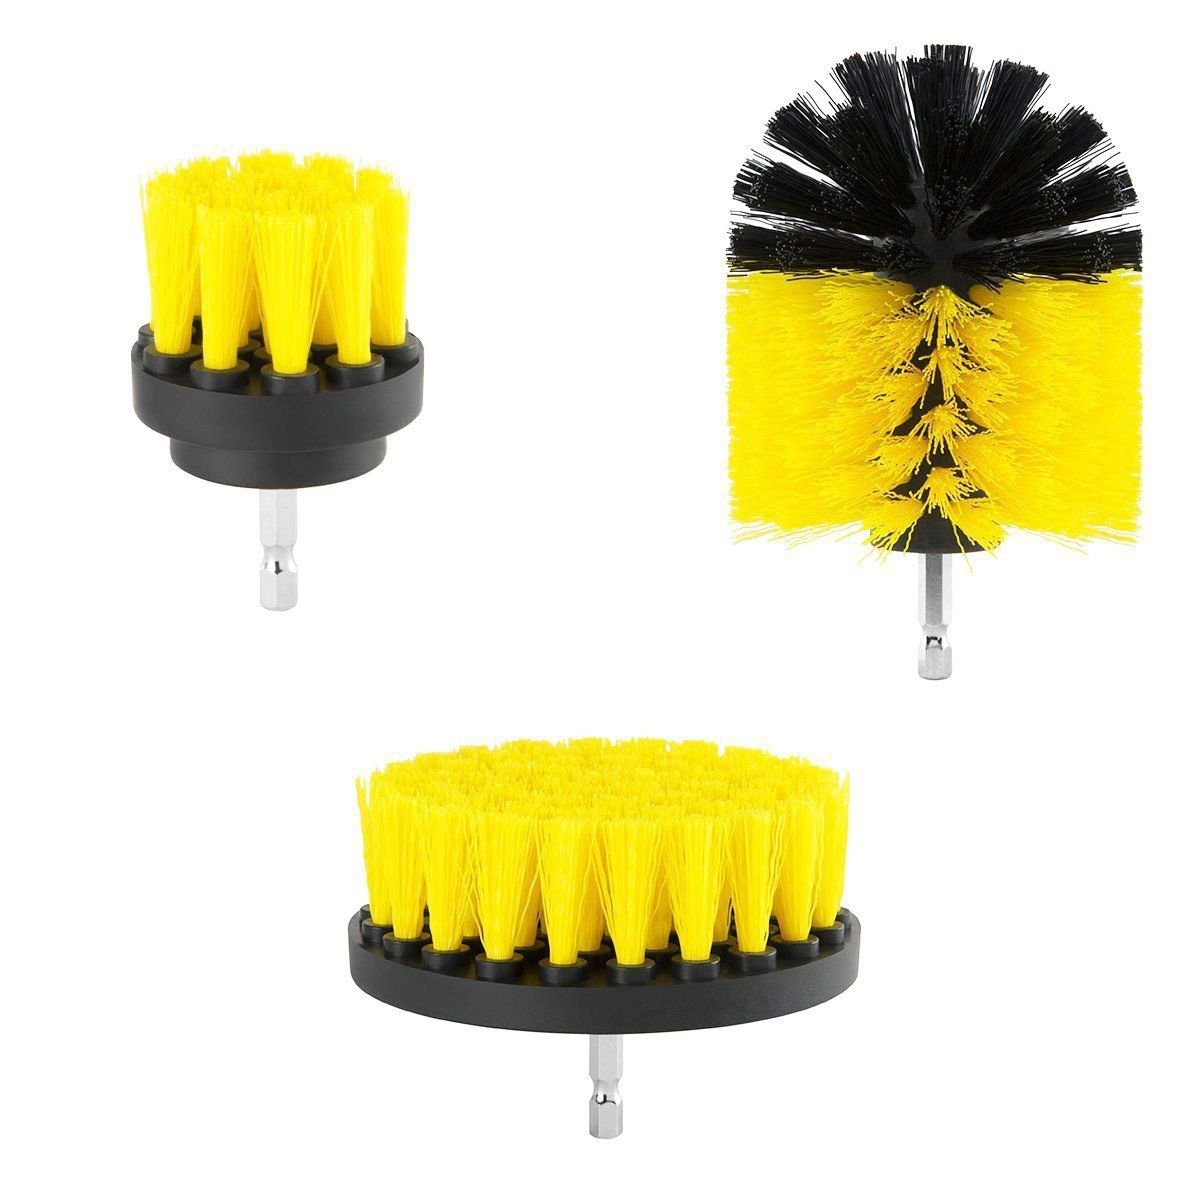 SODIAL 3pcs Eletric Drill Brush Tile Grout Power Scrubber Cleaning Tub Cleaner Combo Tool for Power Tools